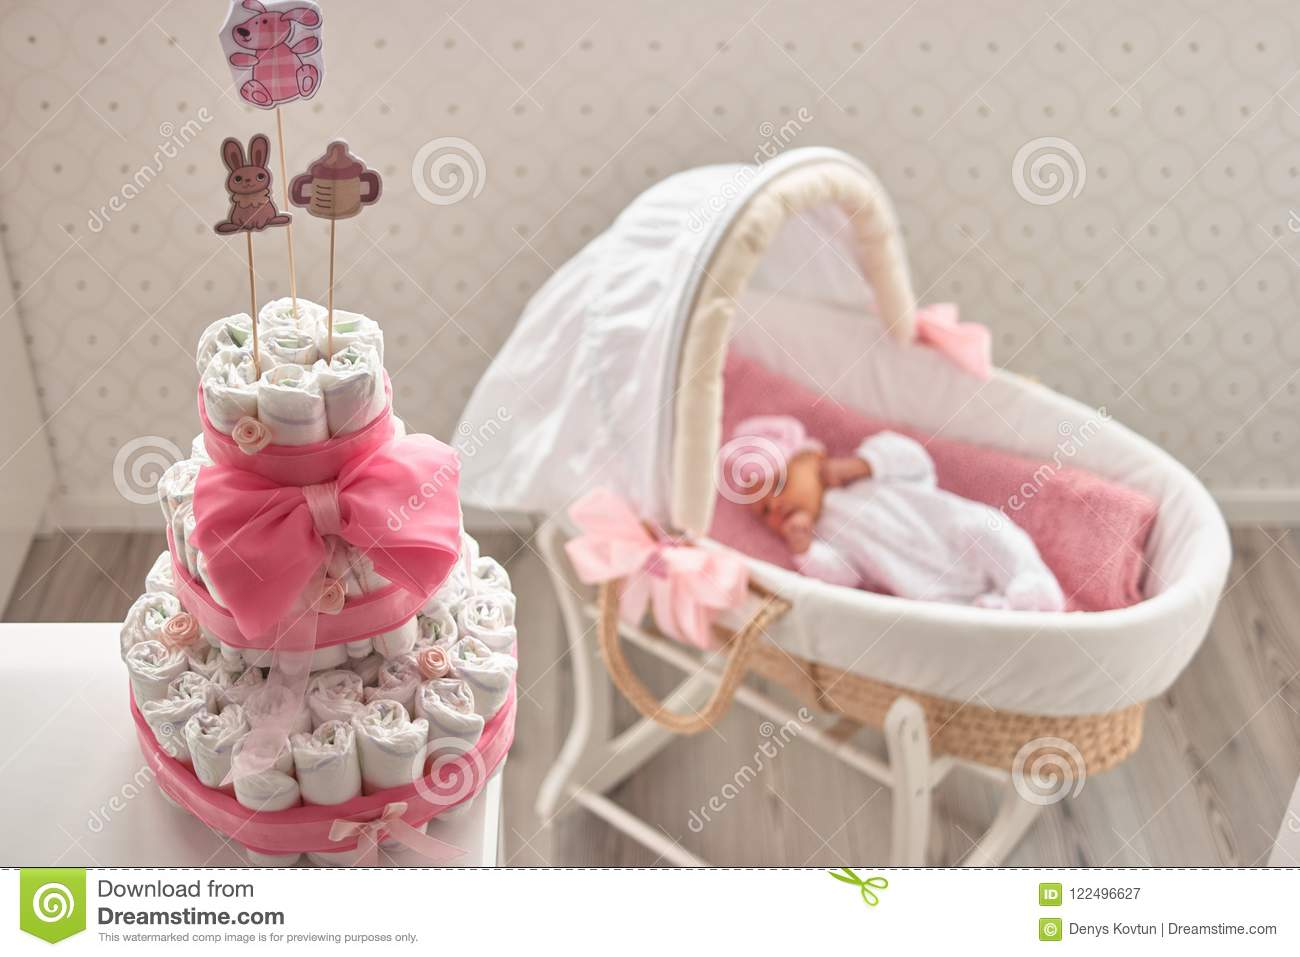 Unusual gift for baby  stock image  Image of focus, decorated